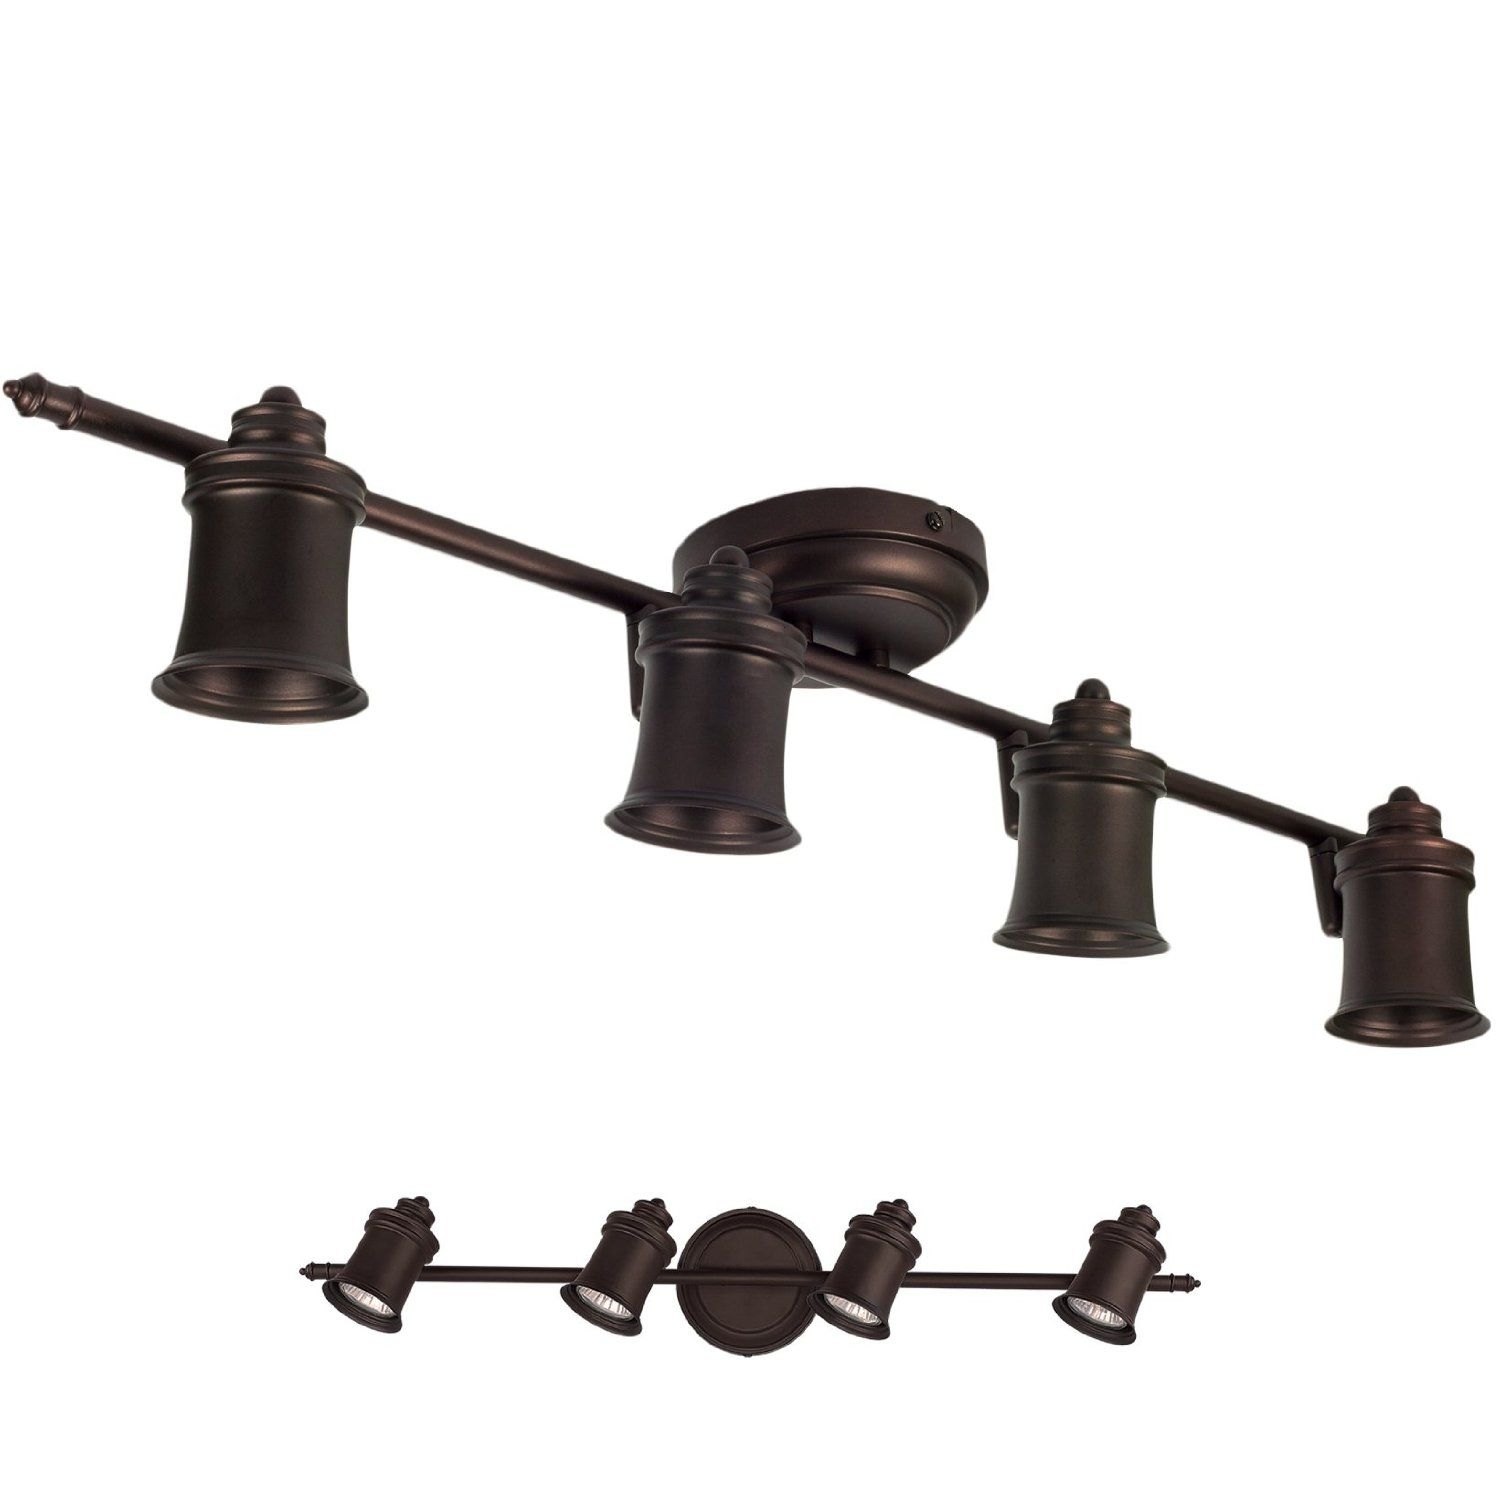 Oil Rubbed Bronze 4 Light Track Lighting Wall Ceiling Mount Fixture